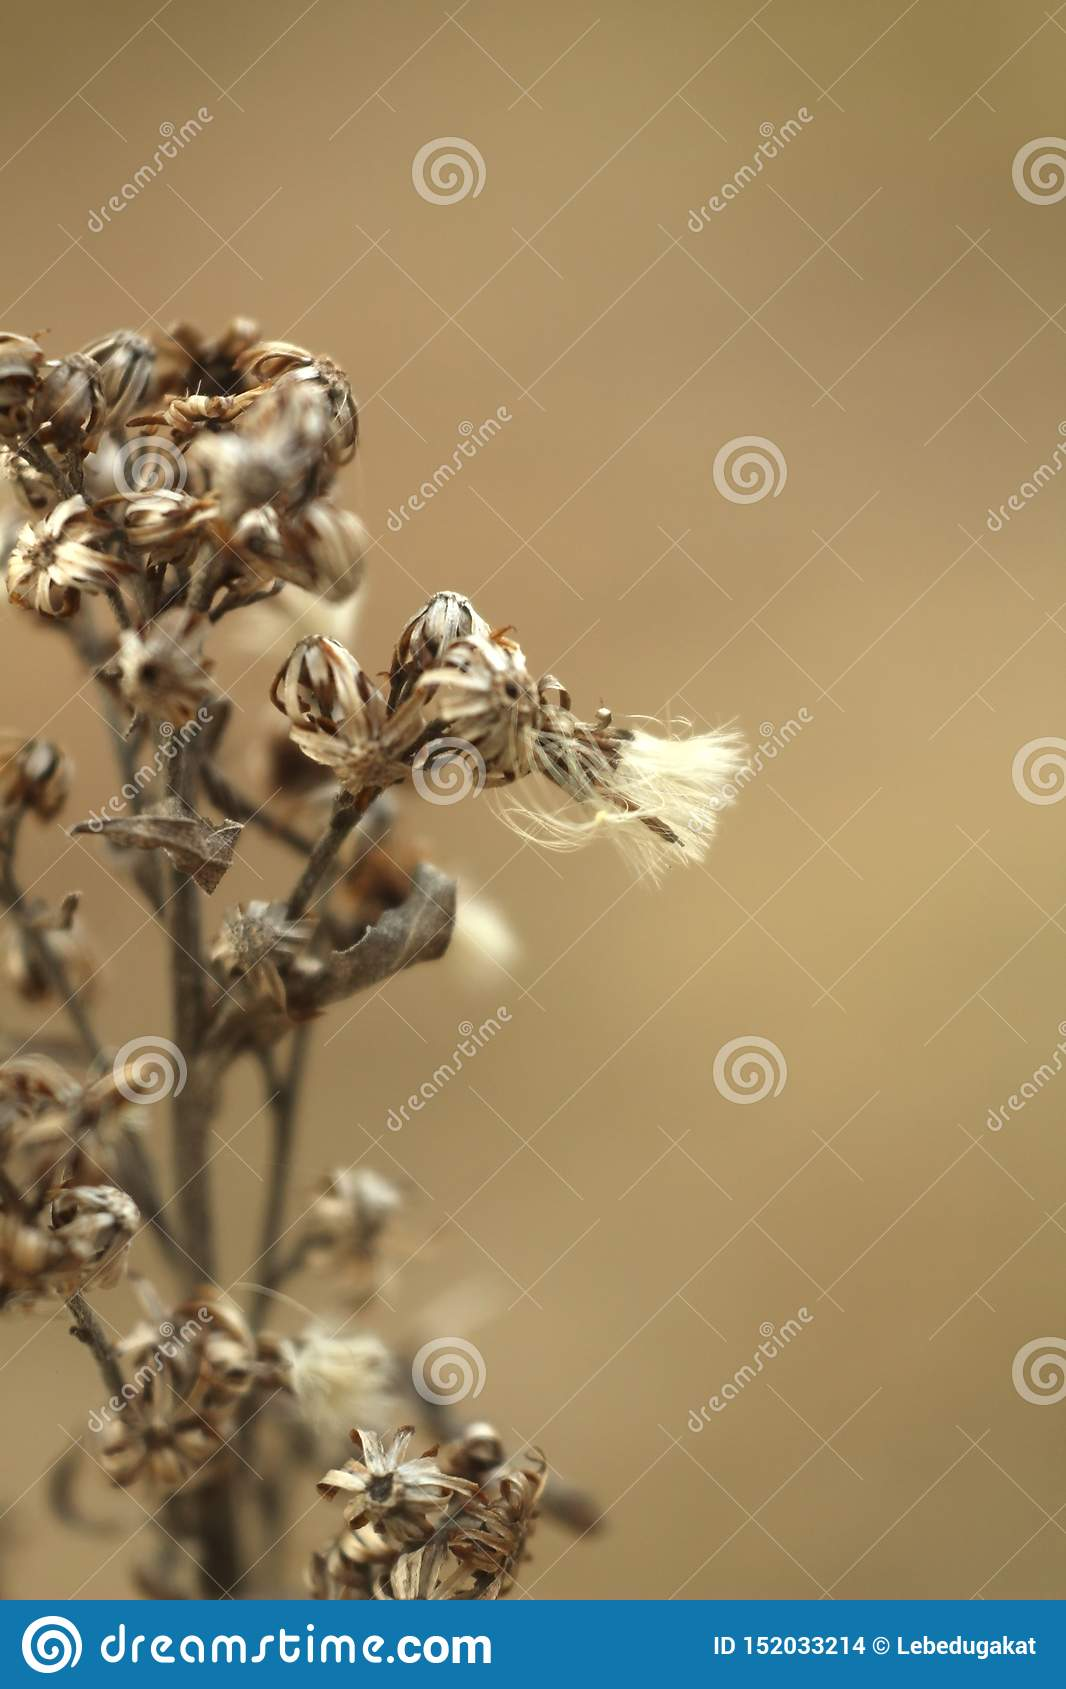 Macro photo of dry flowers grass on blurred brown